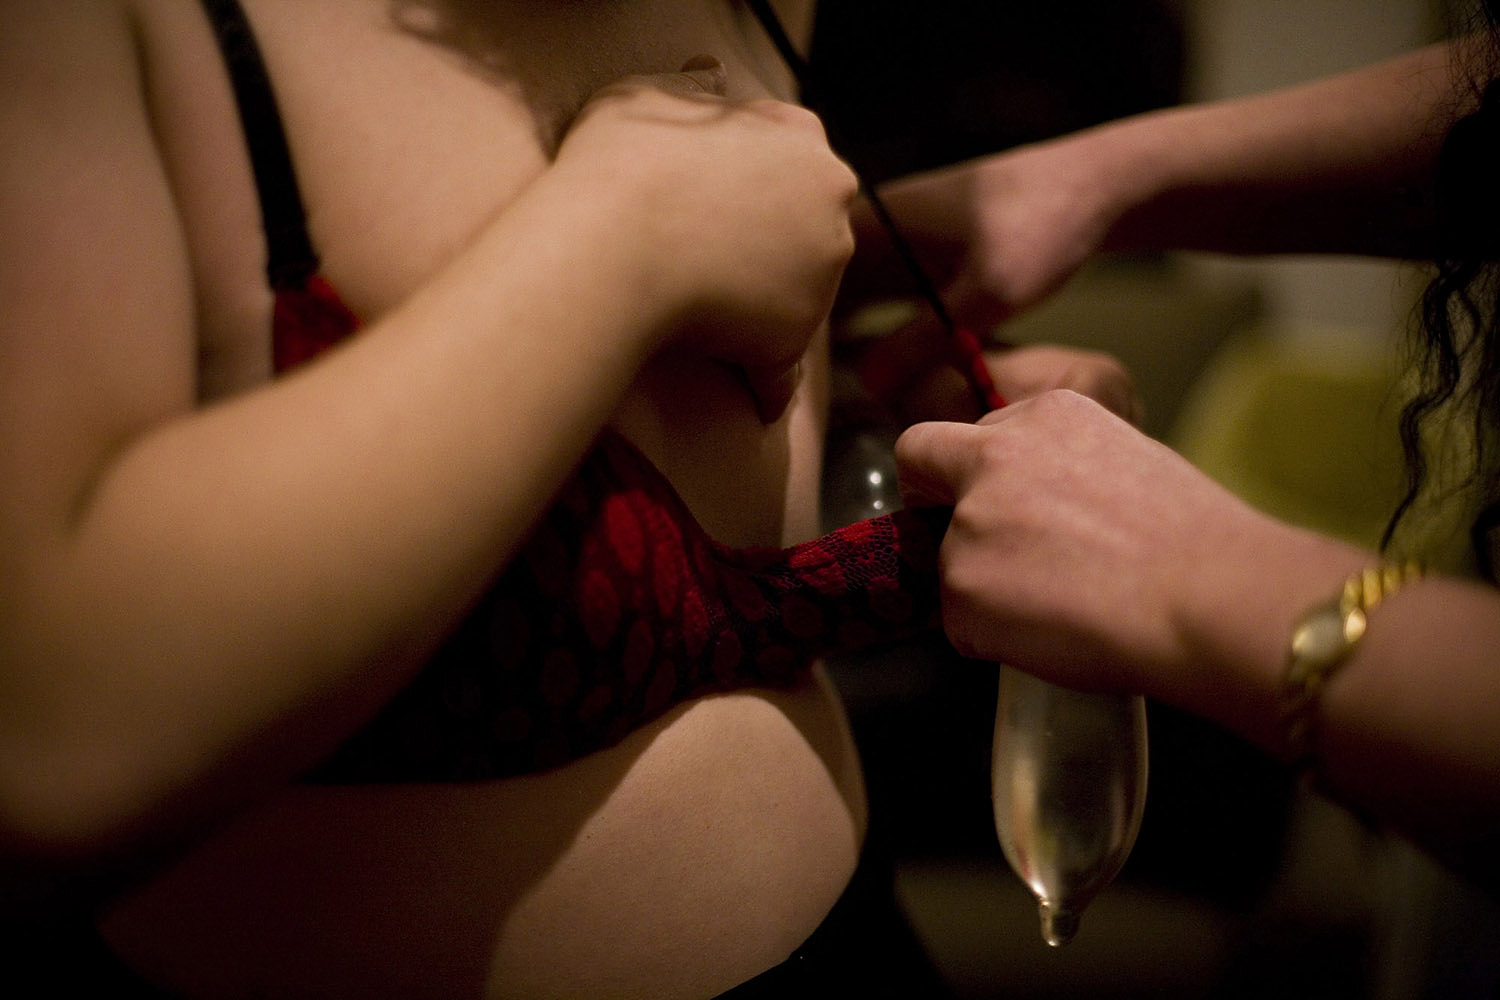 Pamela stuffs her bra with condoms prior to a drag show in Beirut in April 2010.